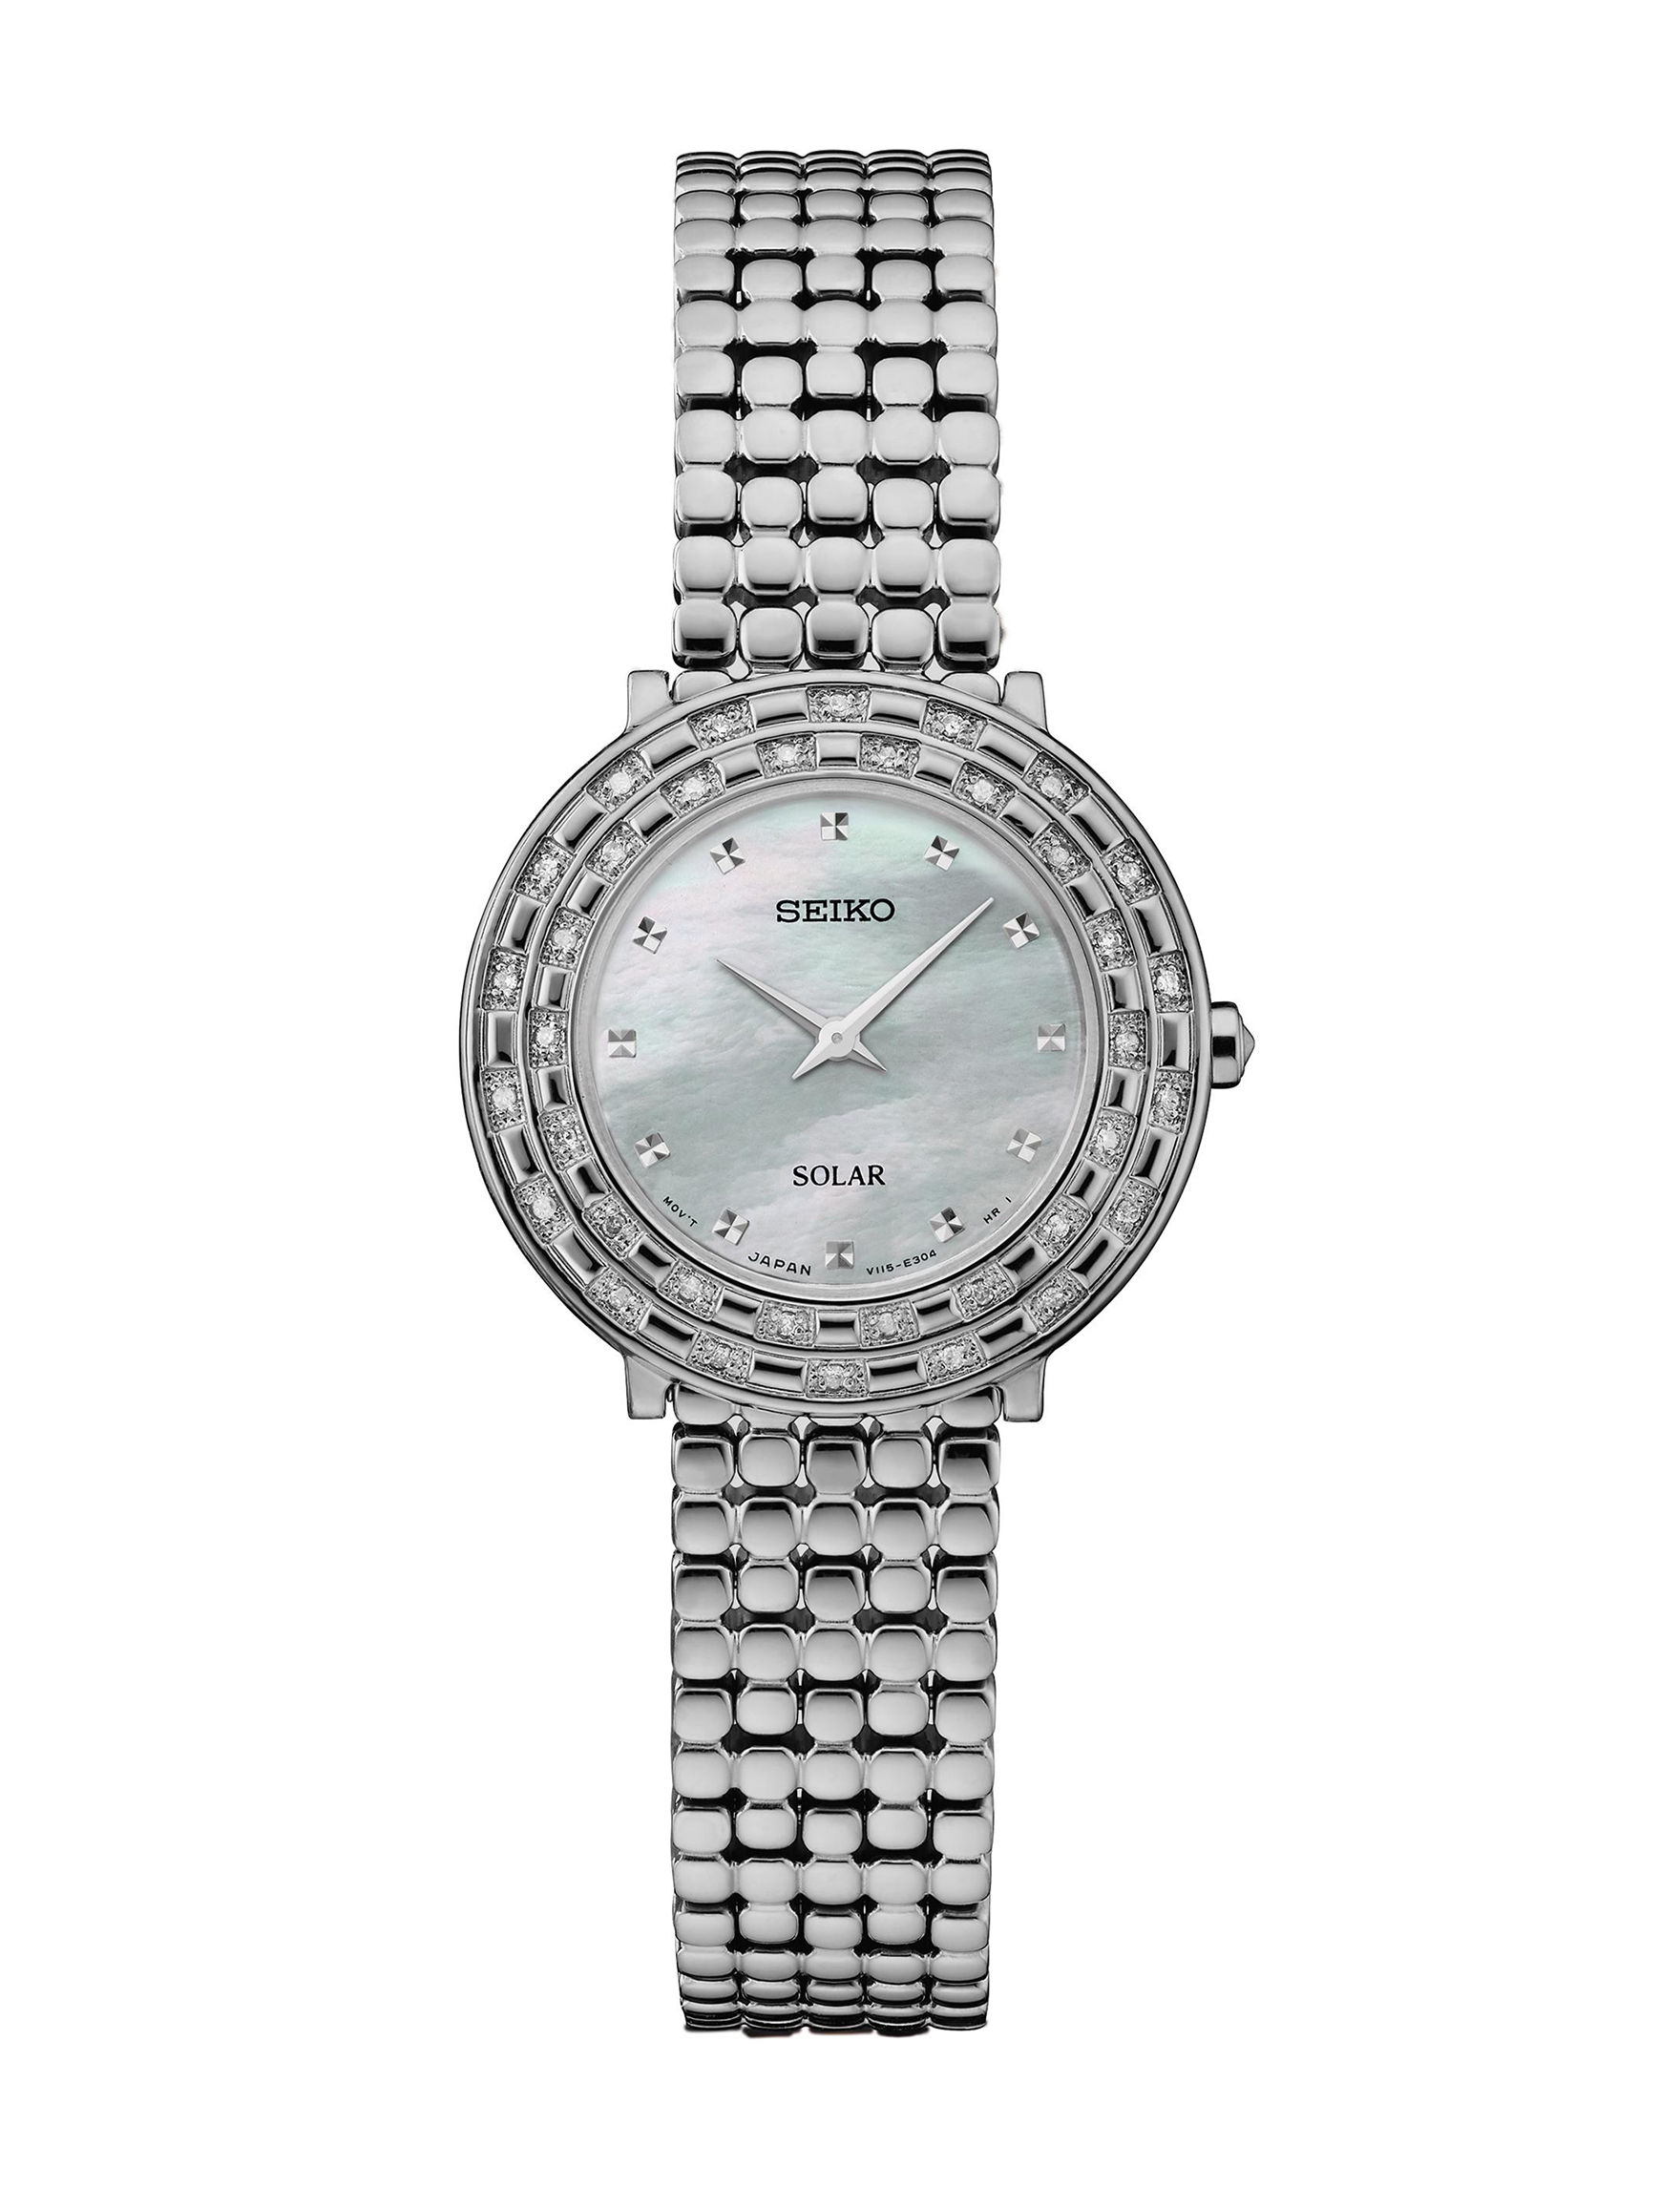 Seiko Silver Fashion Watches Accessories